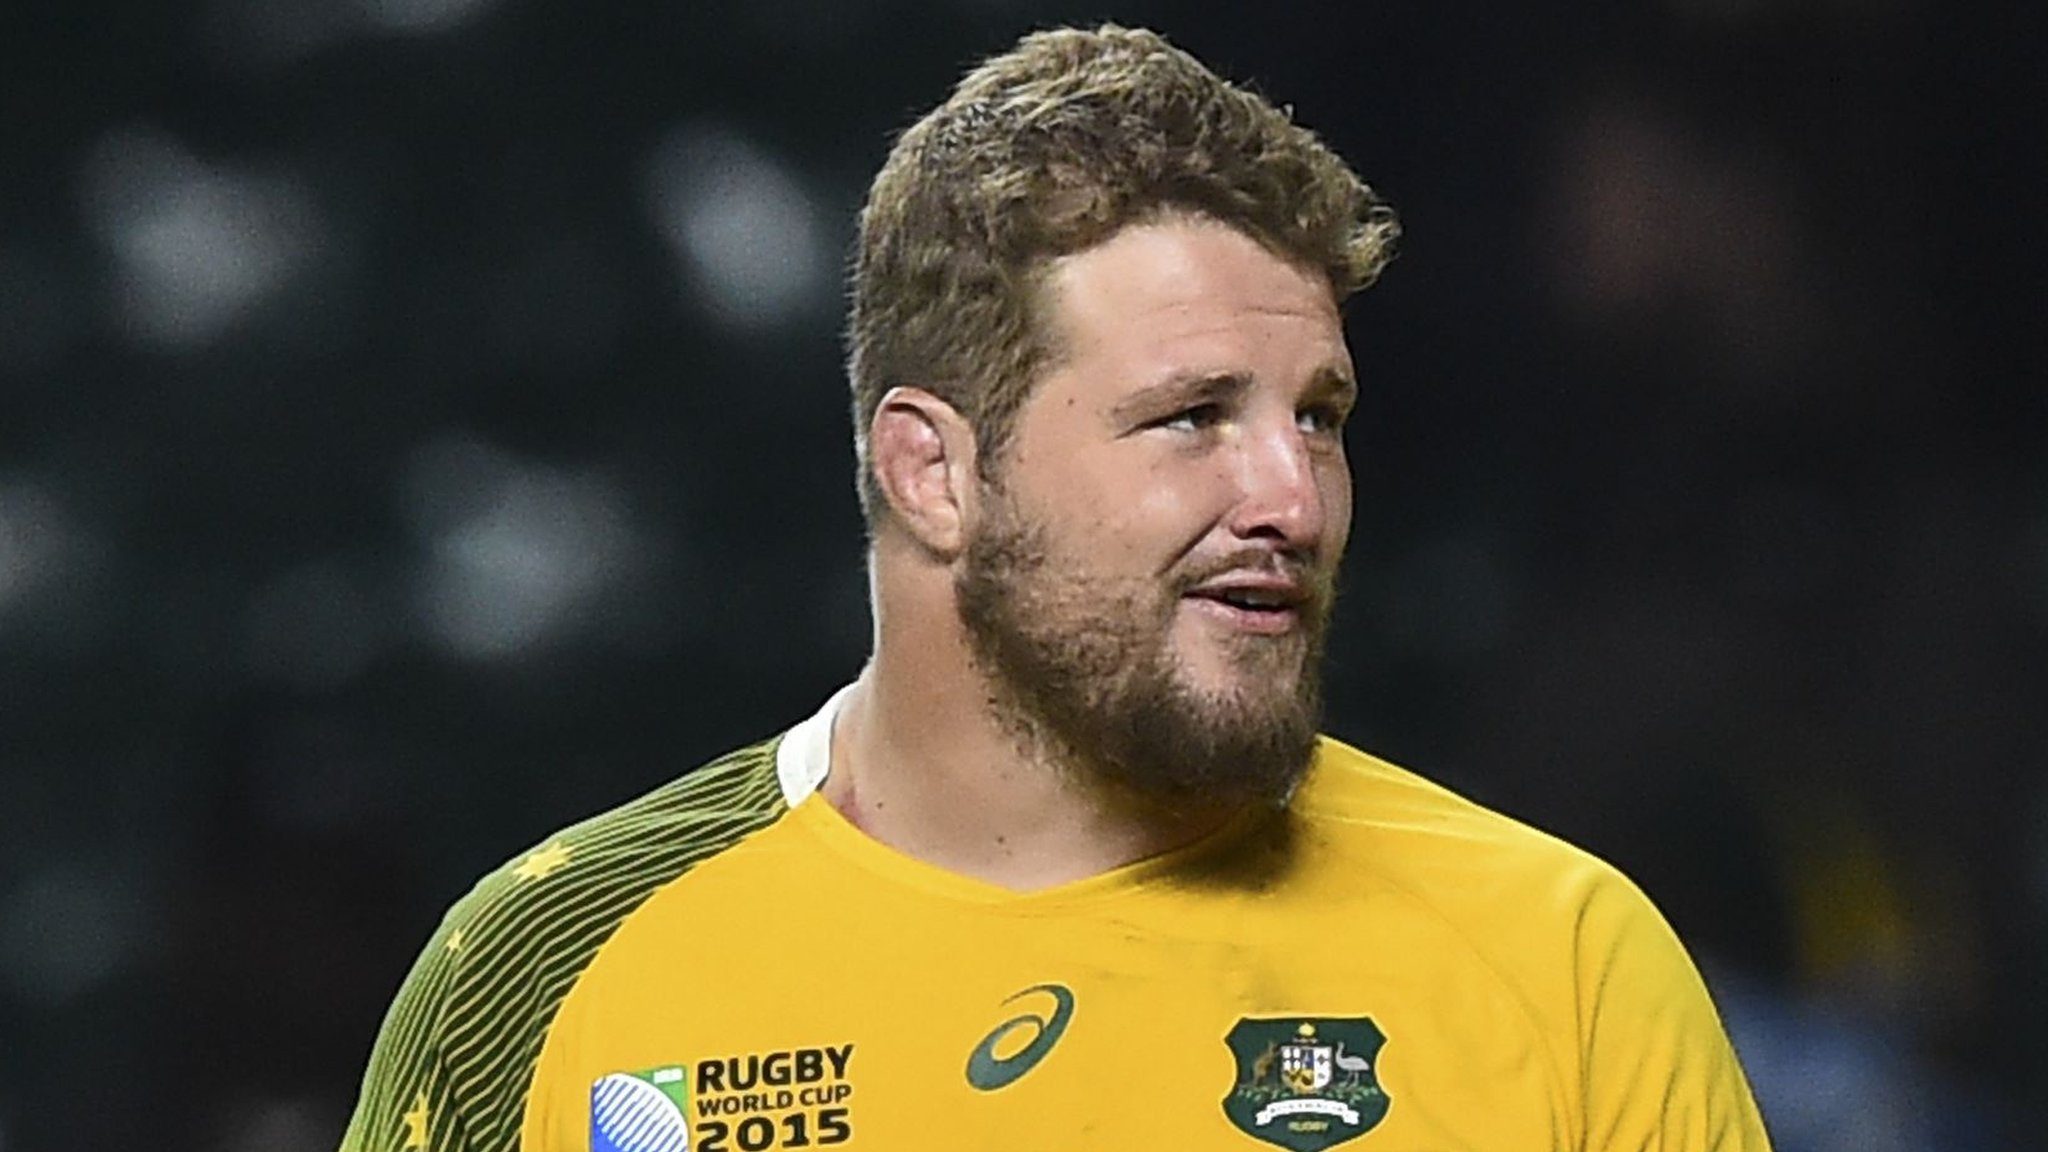 Australia prop Slipper banned after taking cocaine